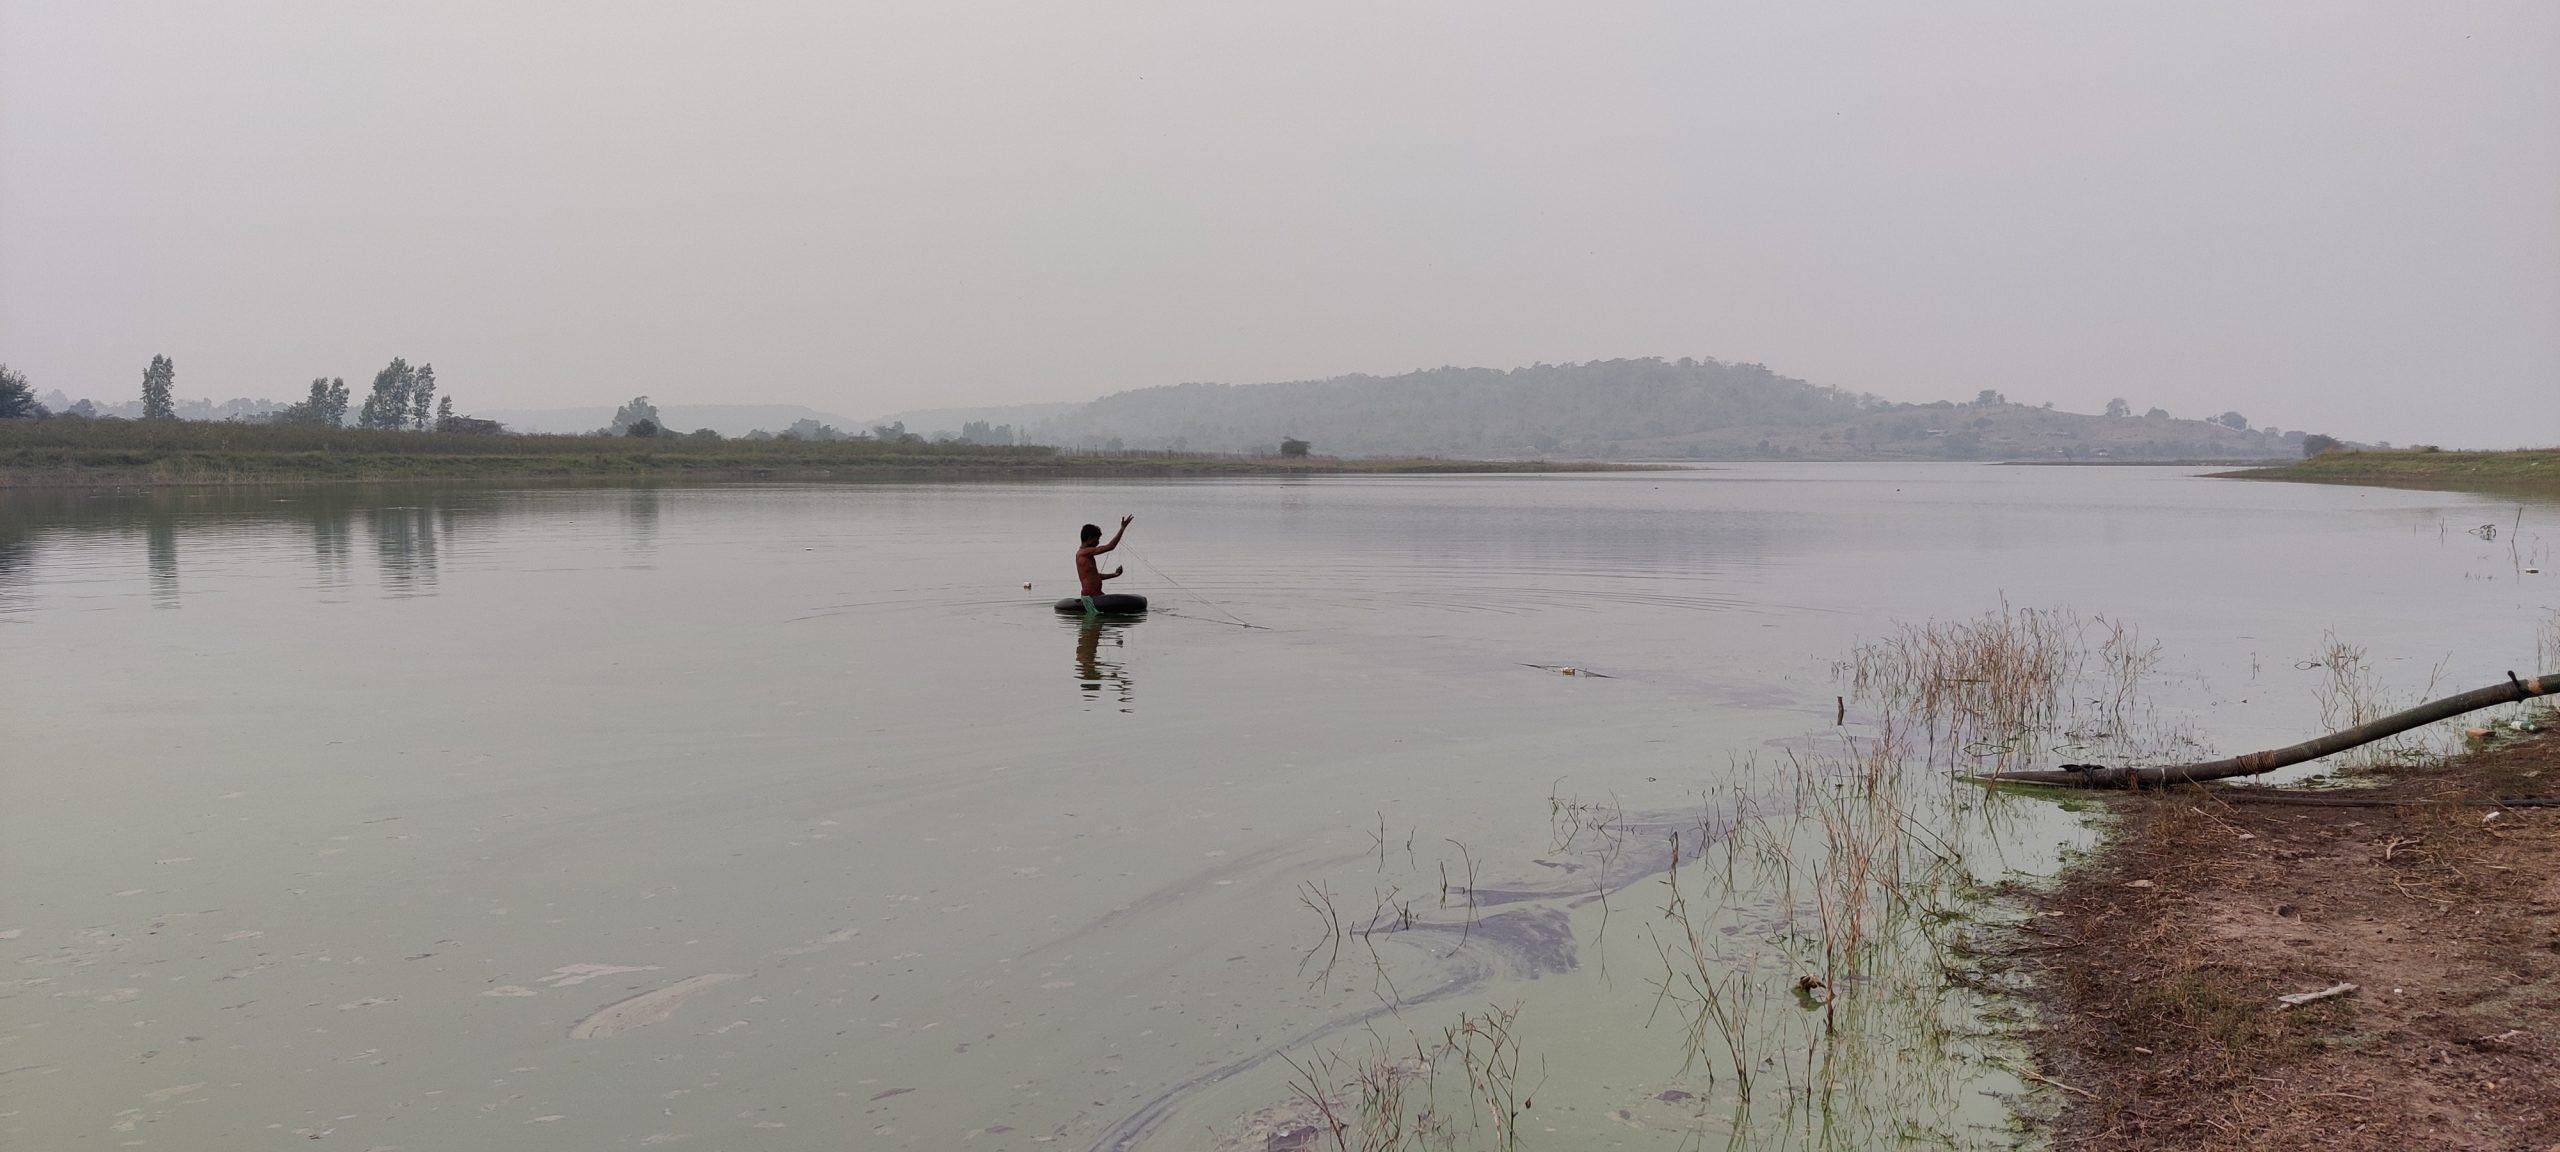 A fisherman in a pond